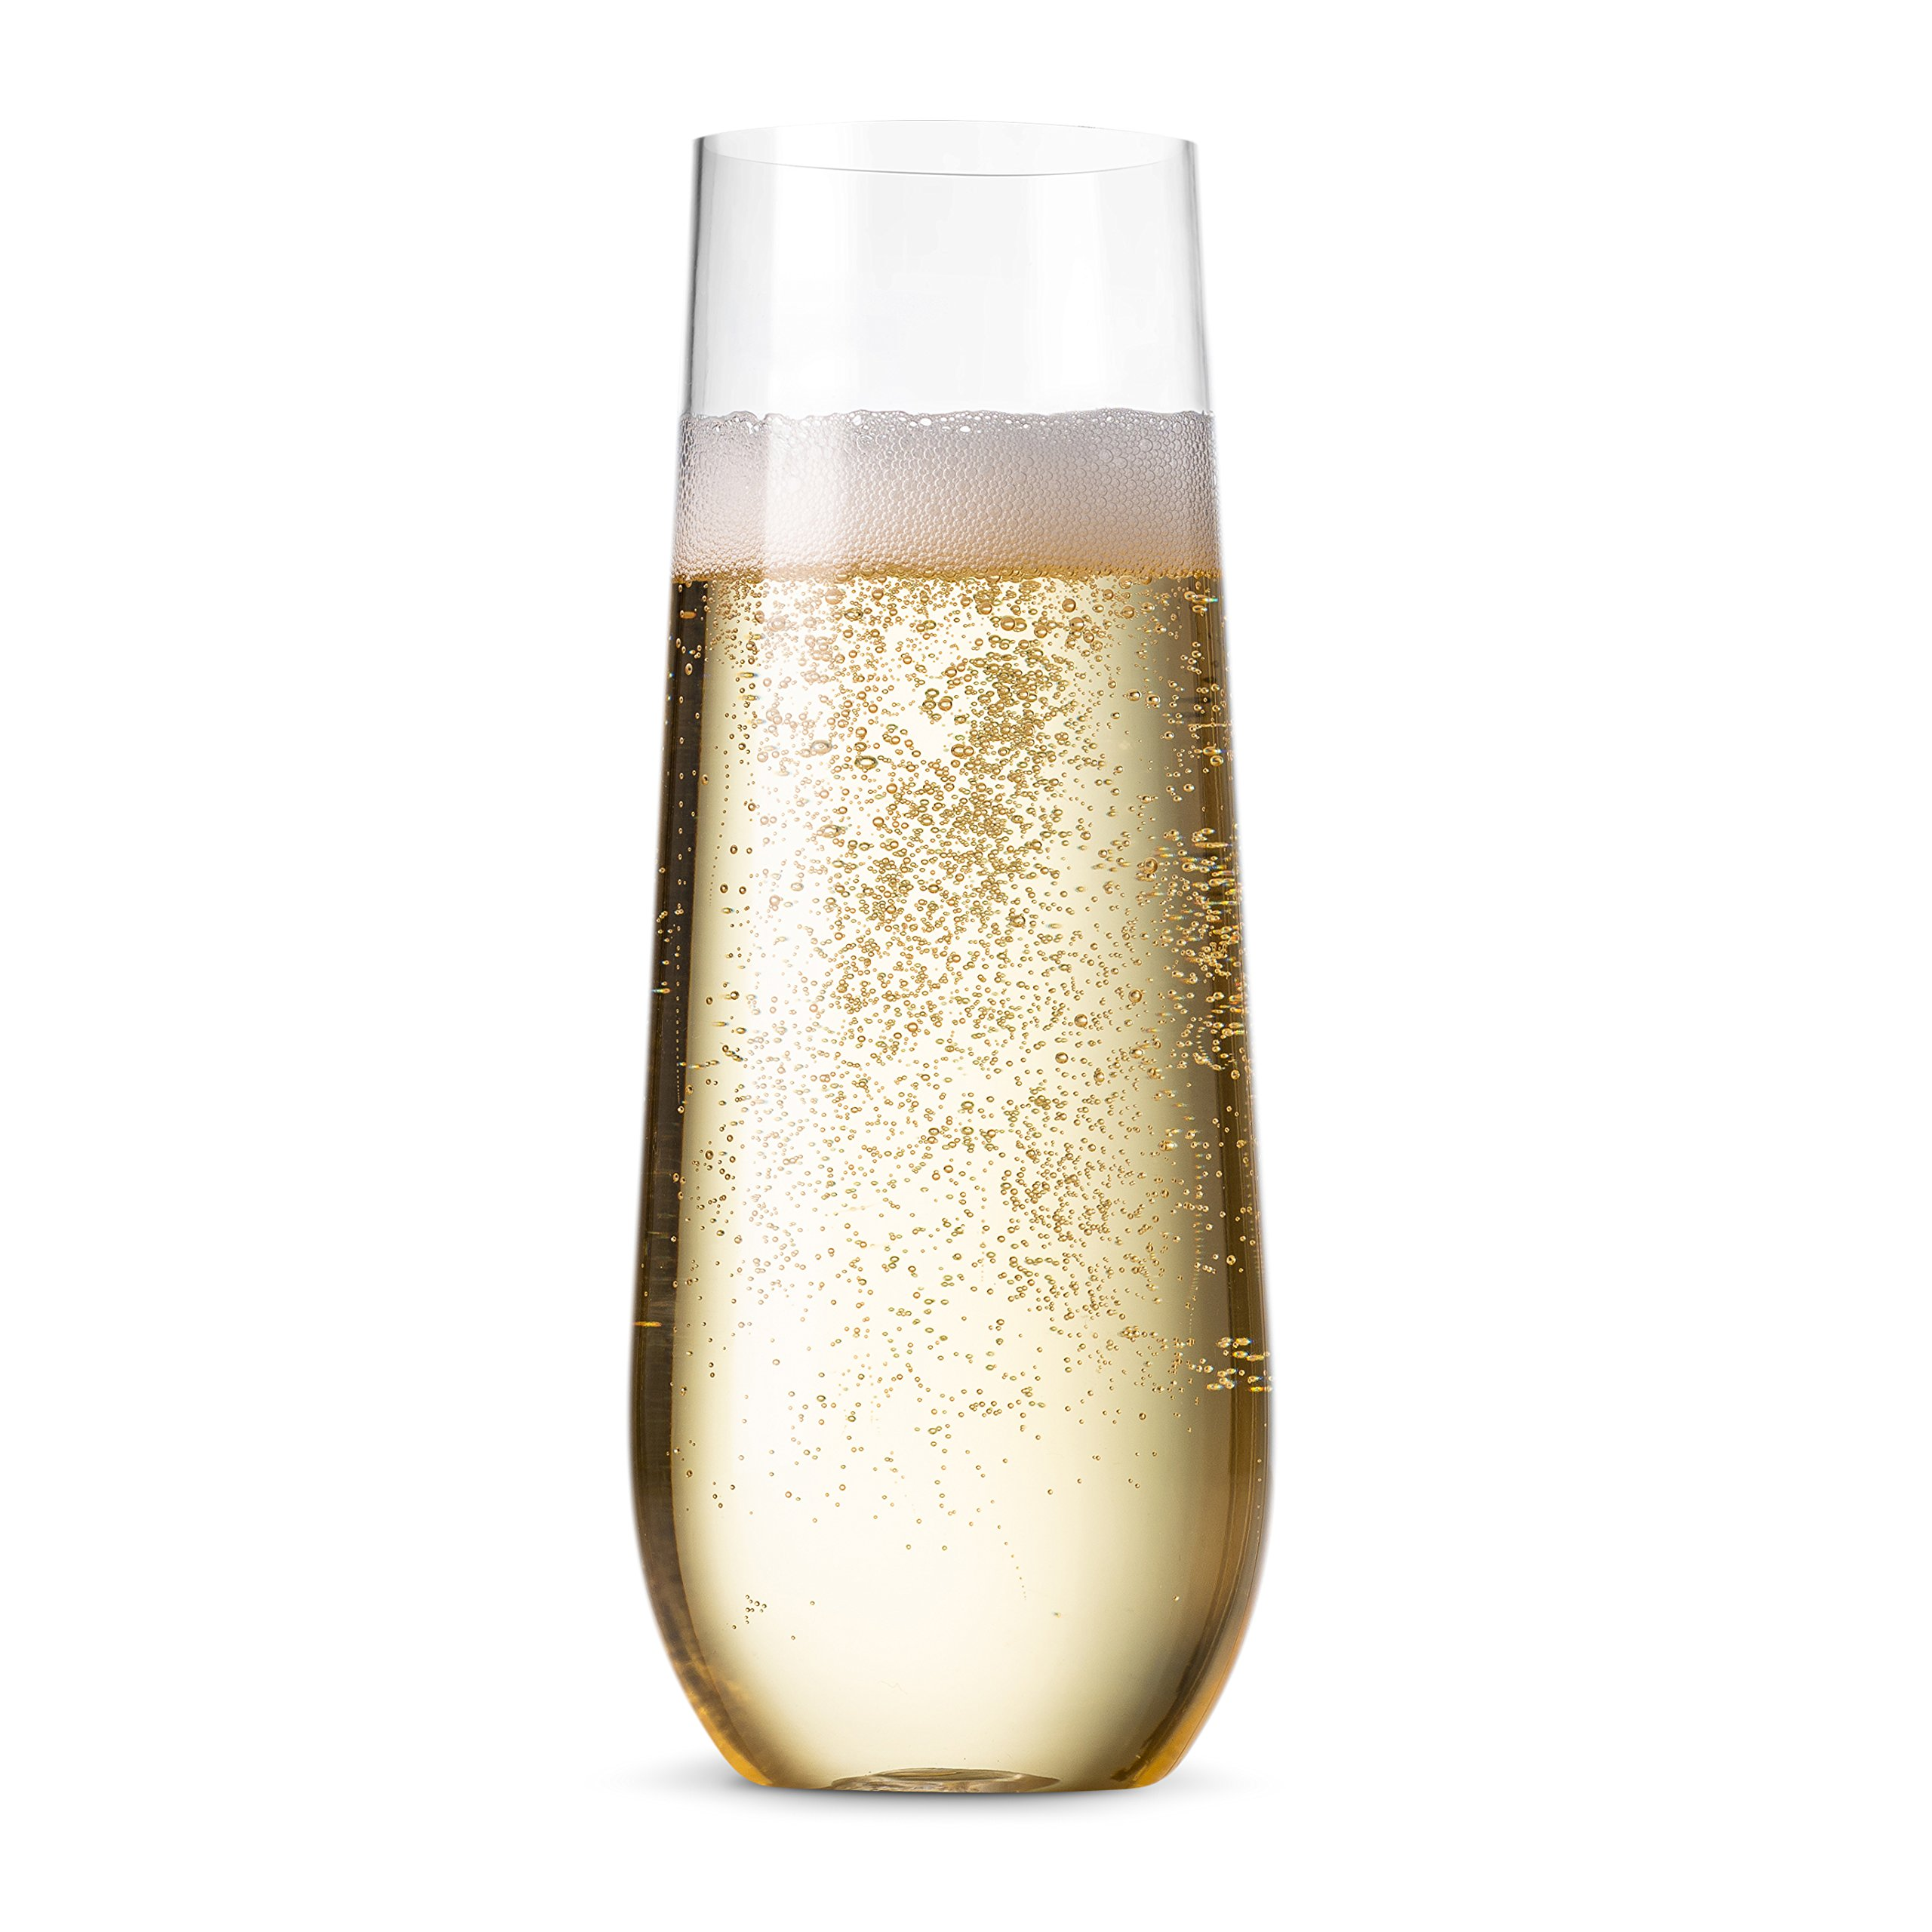 48 Pack Stemless Champagne Flutes ~ 9 Oz Clear Plastic Champagne Toasting Glasses ~ Shatterproof Recyclable and BPA-Free